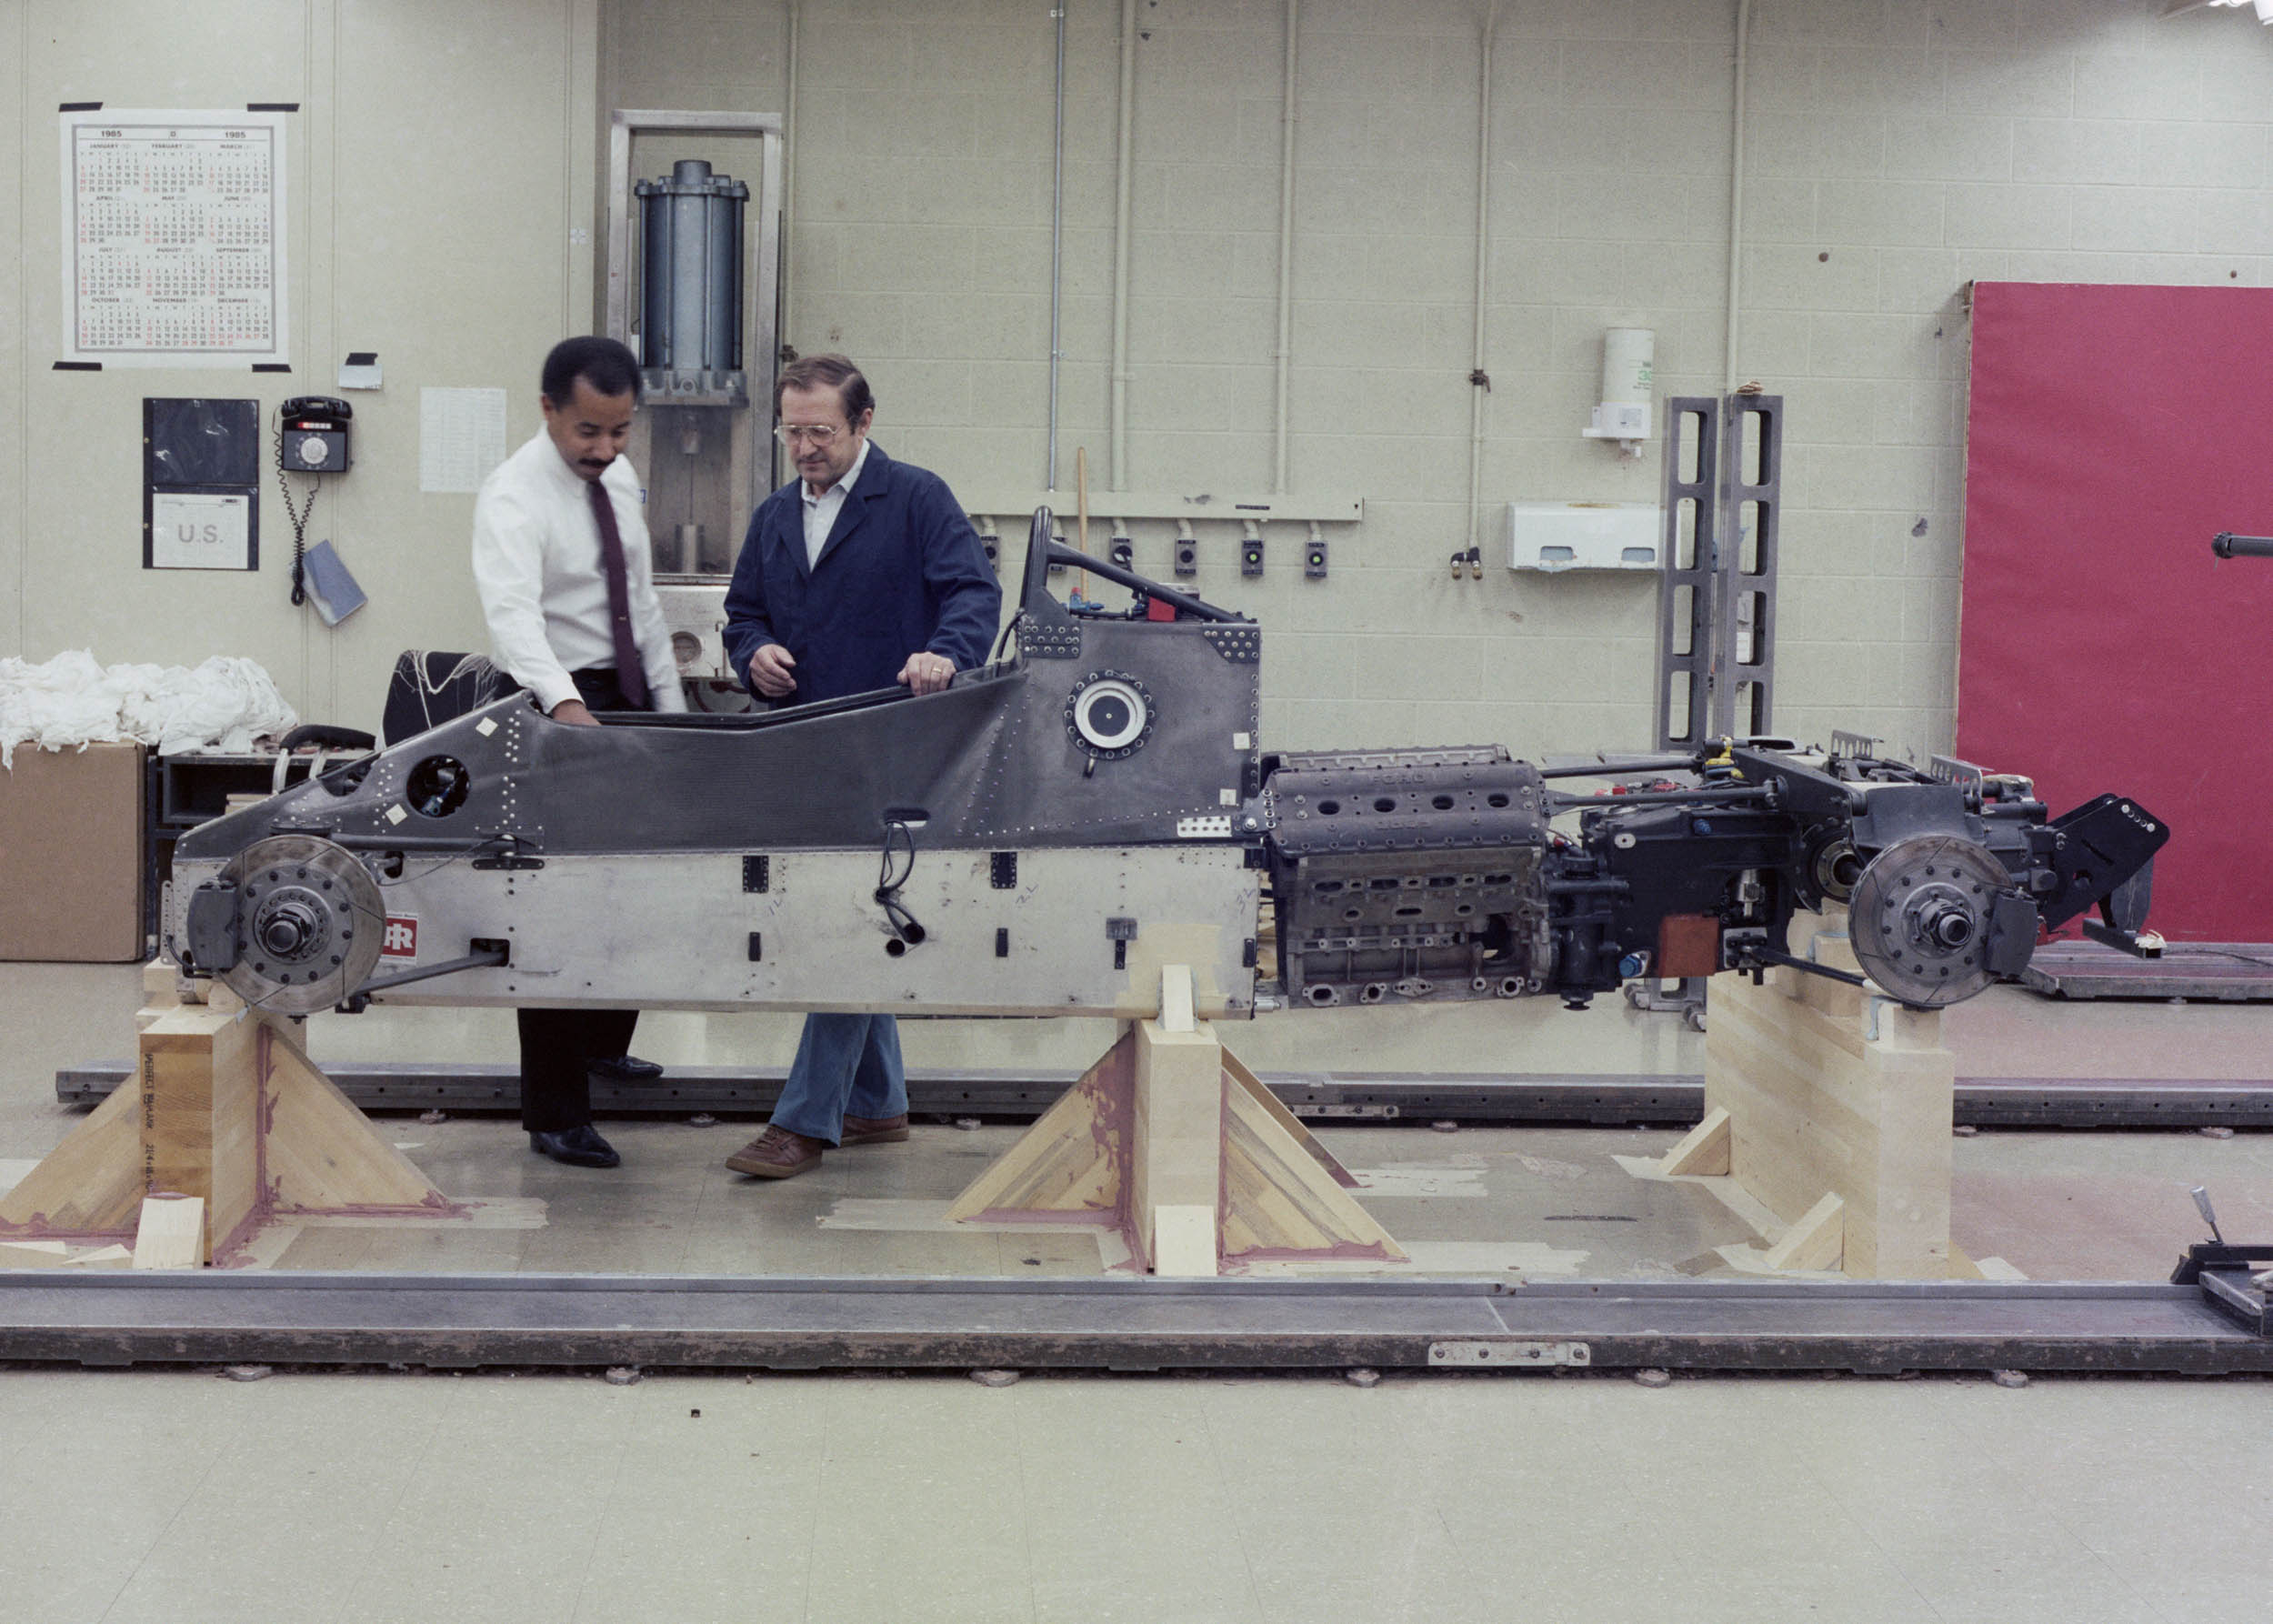 Ed Welburn next to the Oldsmobile Aerotech Indy Record Car Scale Model in 1984